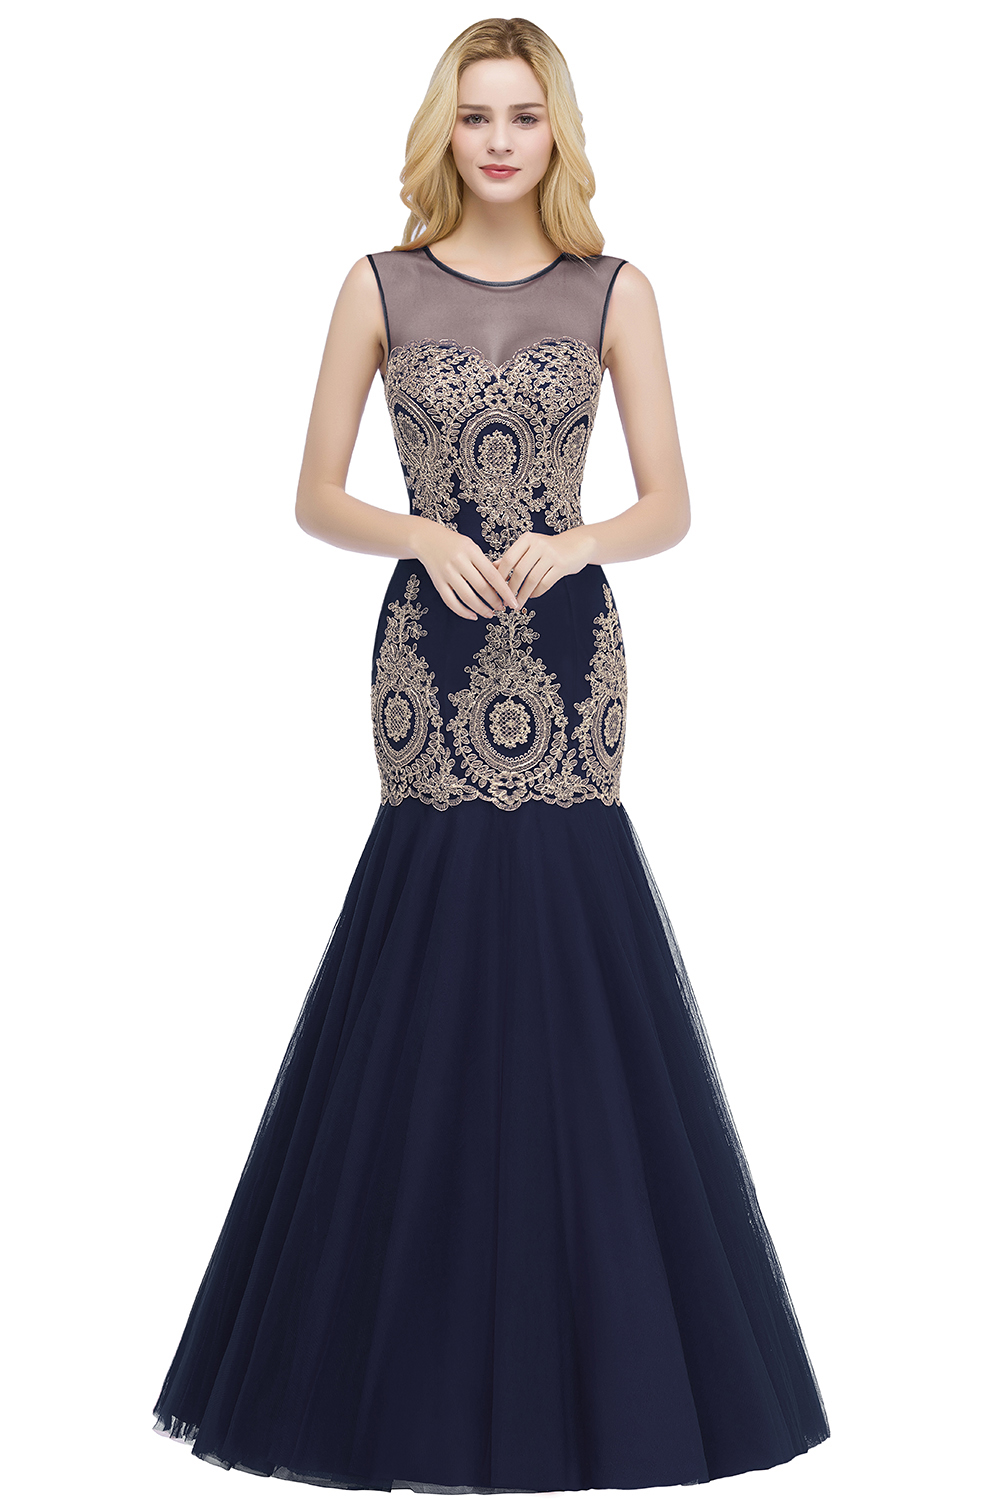 BMbridal Burgundy Lace Appliques Mermaid Prom Dress Long Online